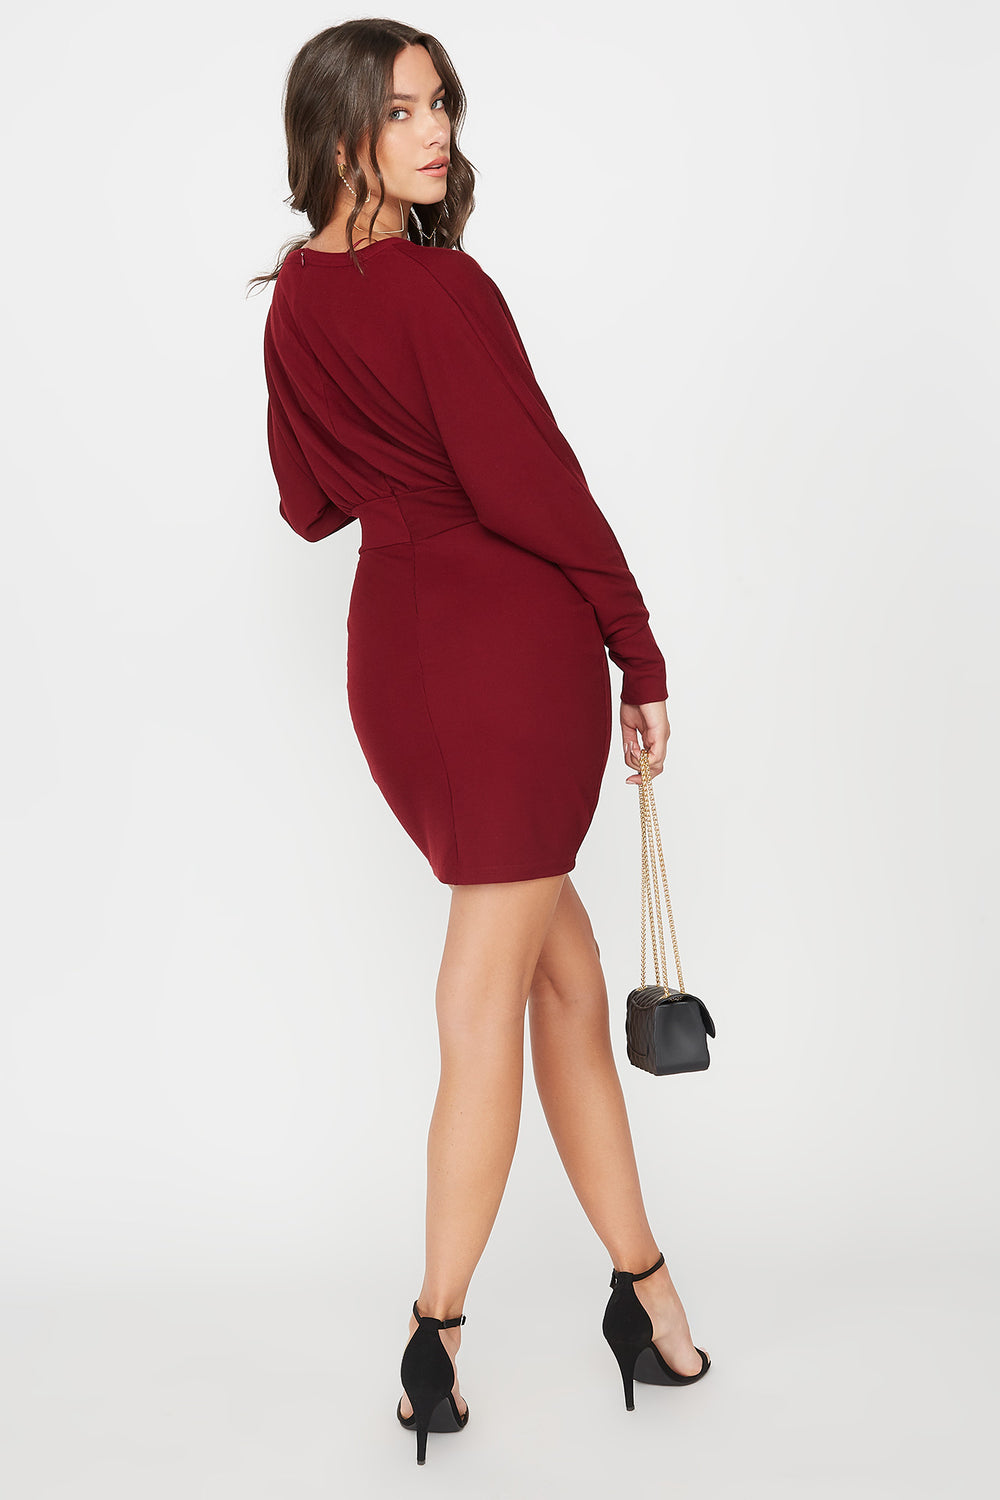 Scoop Neck Self Tie Dolman Long Sleeve Dress Burgundy